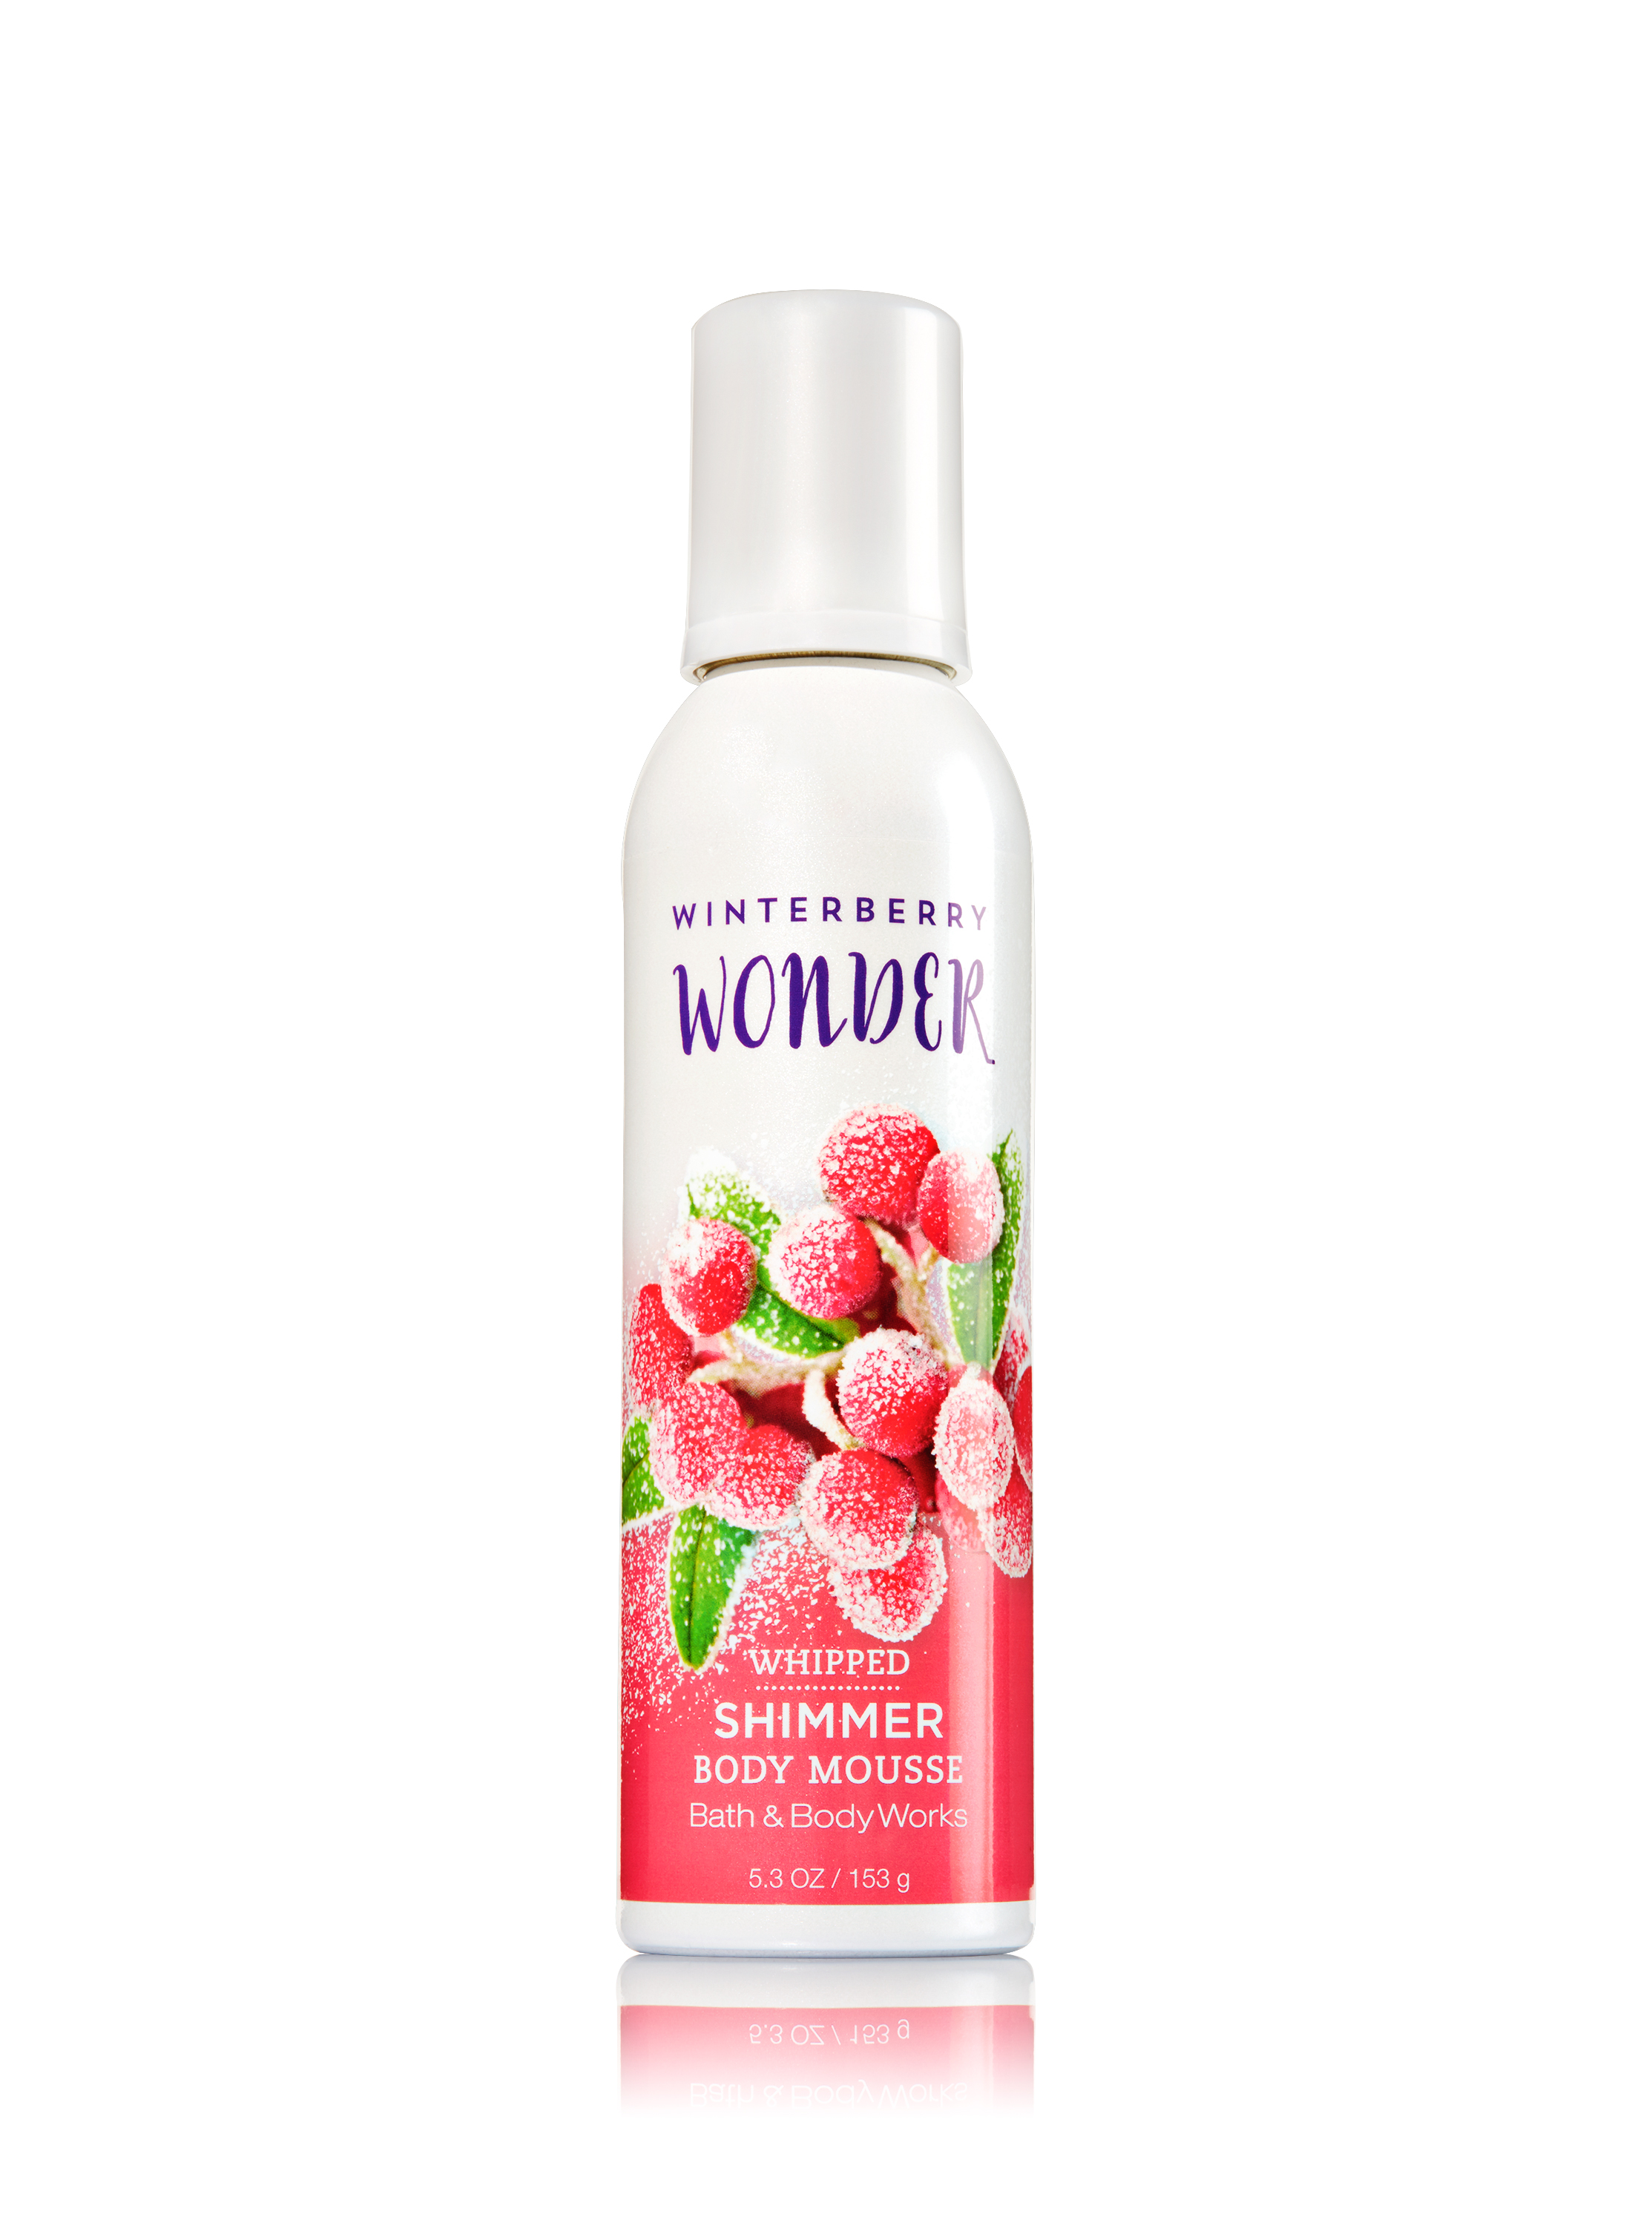 OMG: Bath & Body Works is coming out with moisturizer that ...